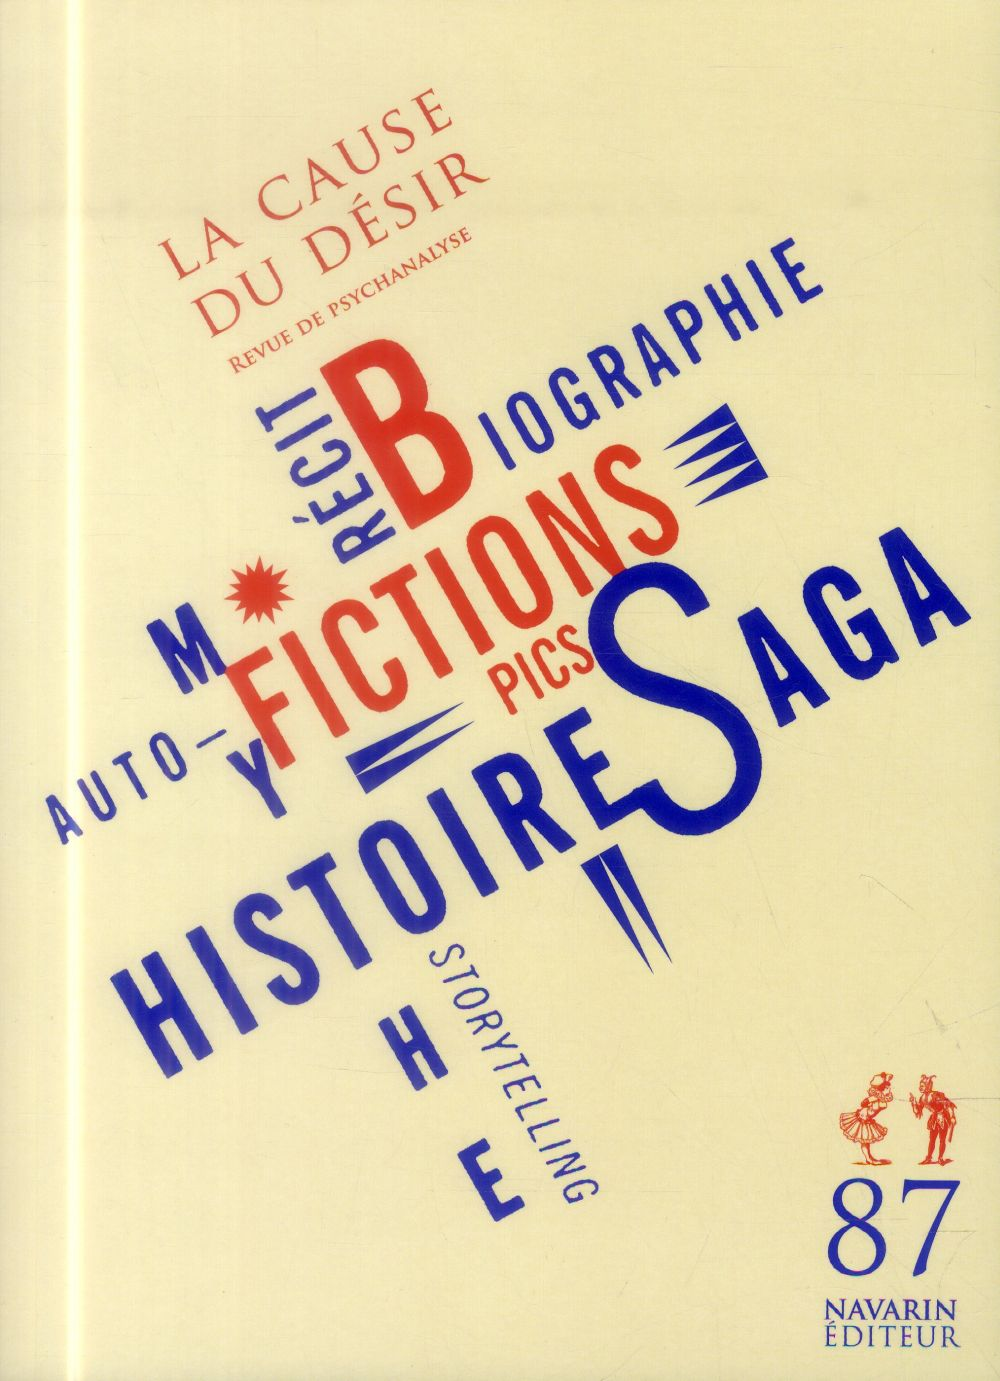 LA CAUSE DU DESIR 87 - FICTIONS